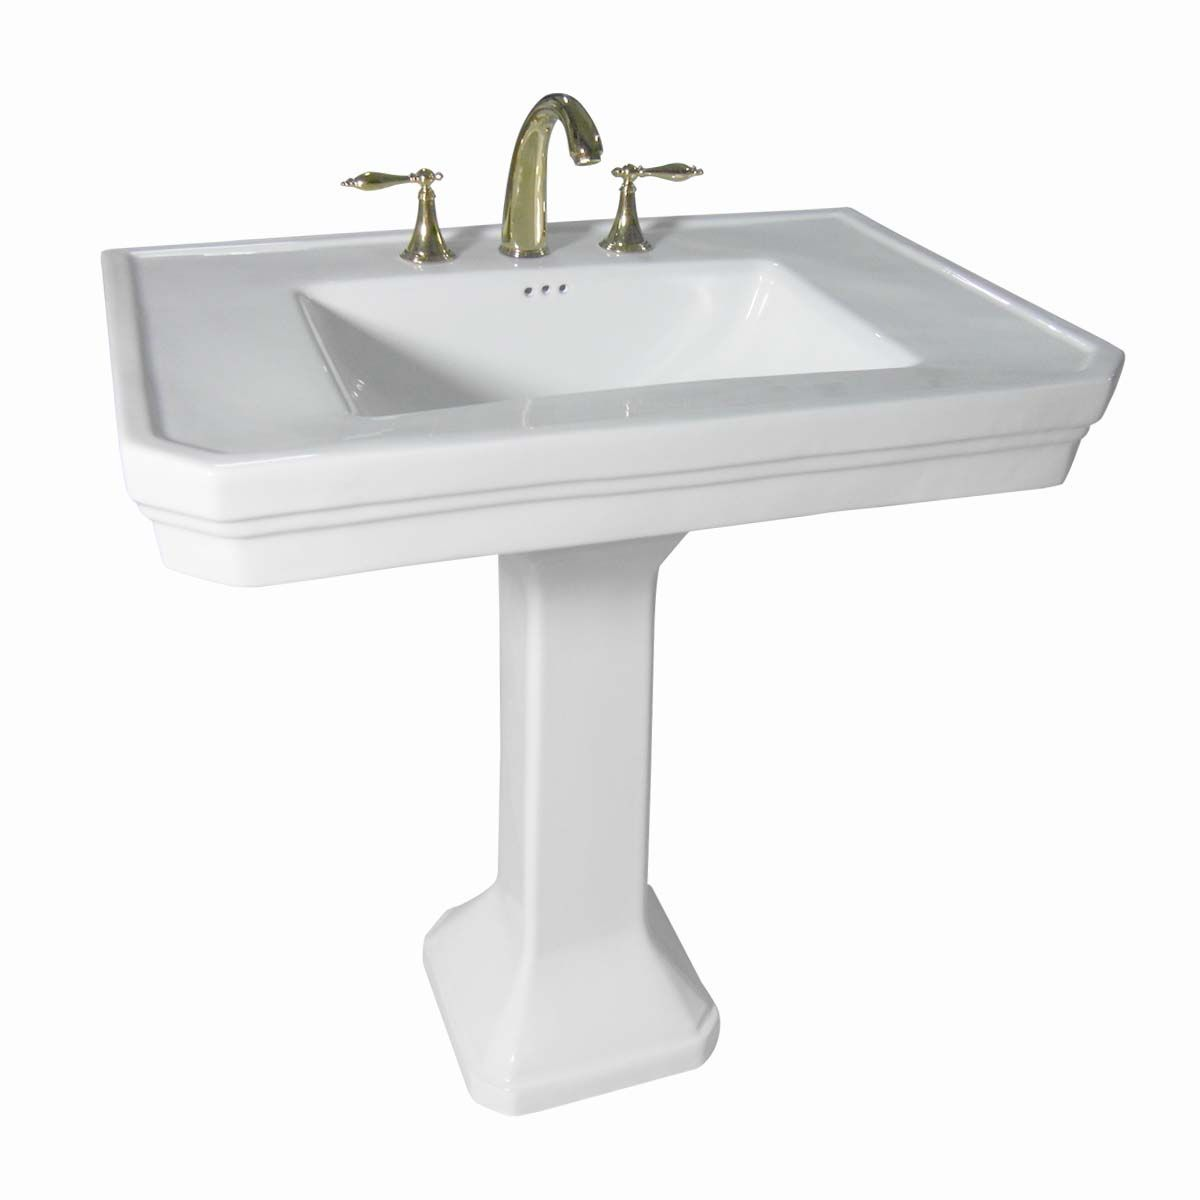 Bathroom Pedestal Sink White Vitreous China 8 Widespread Remodeling Pedestal Sink Traditional Bathroom Sink